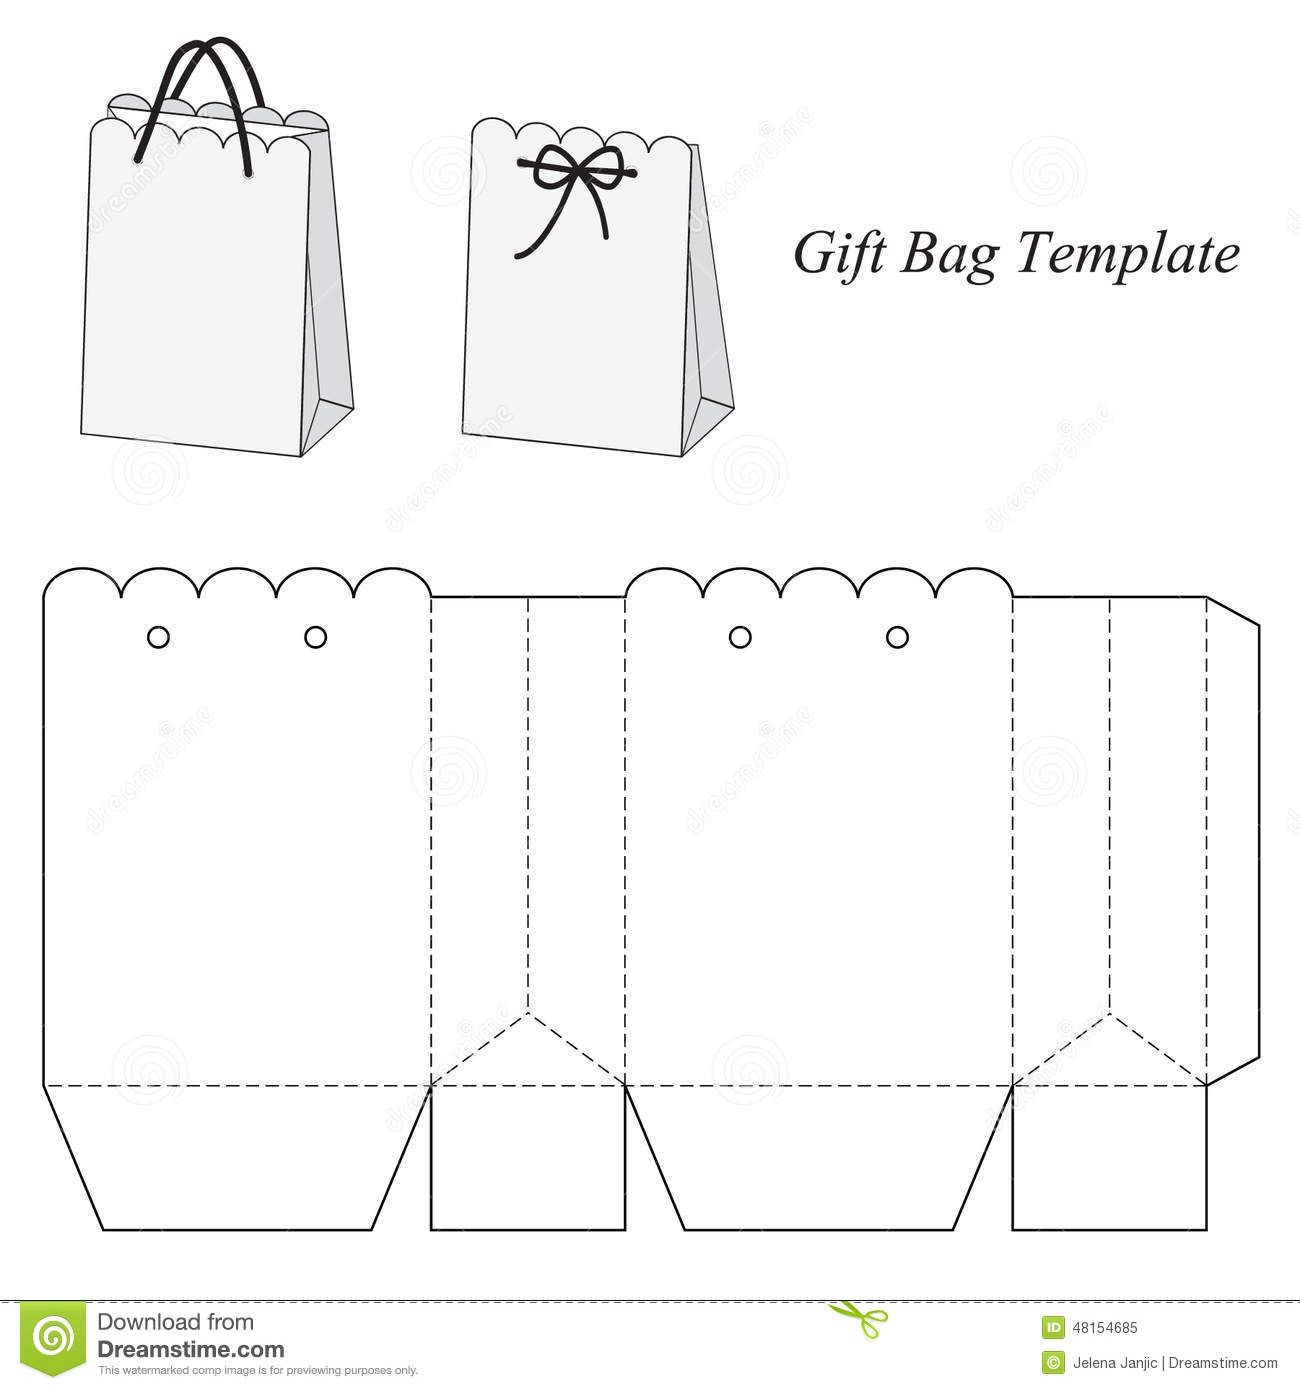 interesting gift bag template download from over 52 million high quality stock photos images. Black Bedroom Furniture Sets. Home Design Ideas